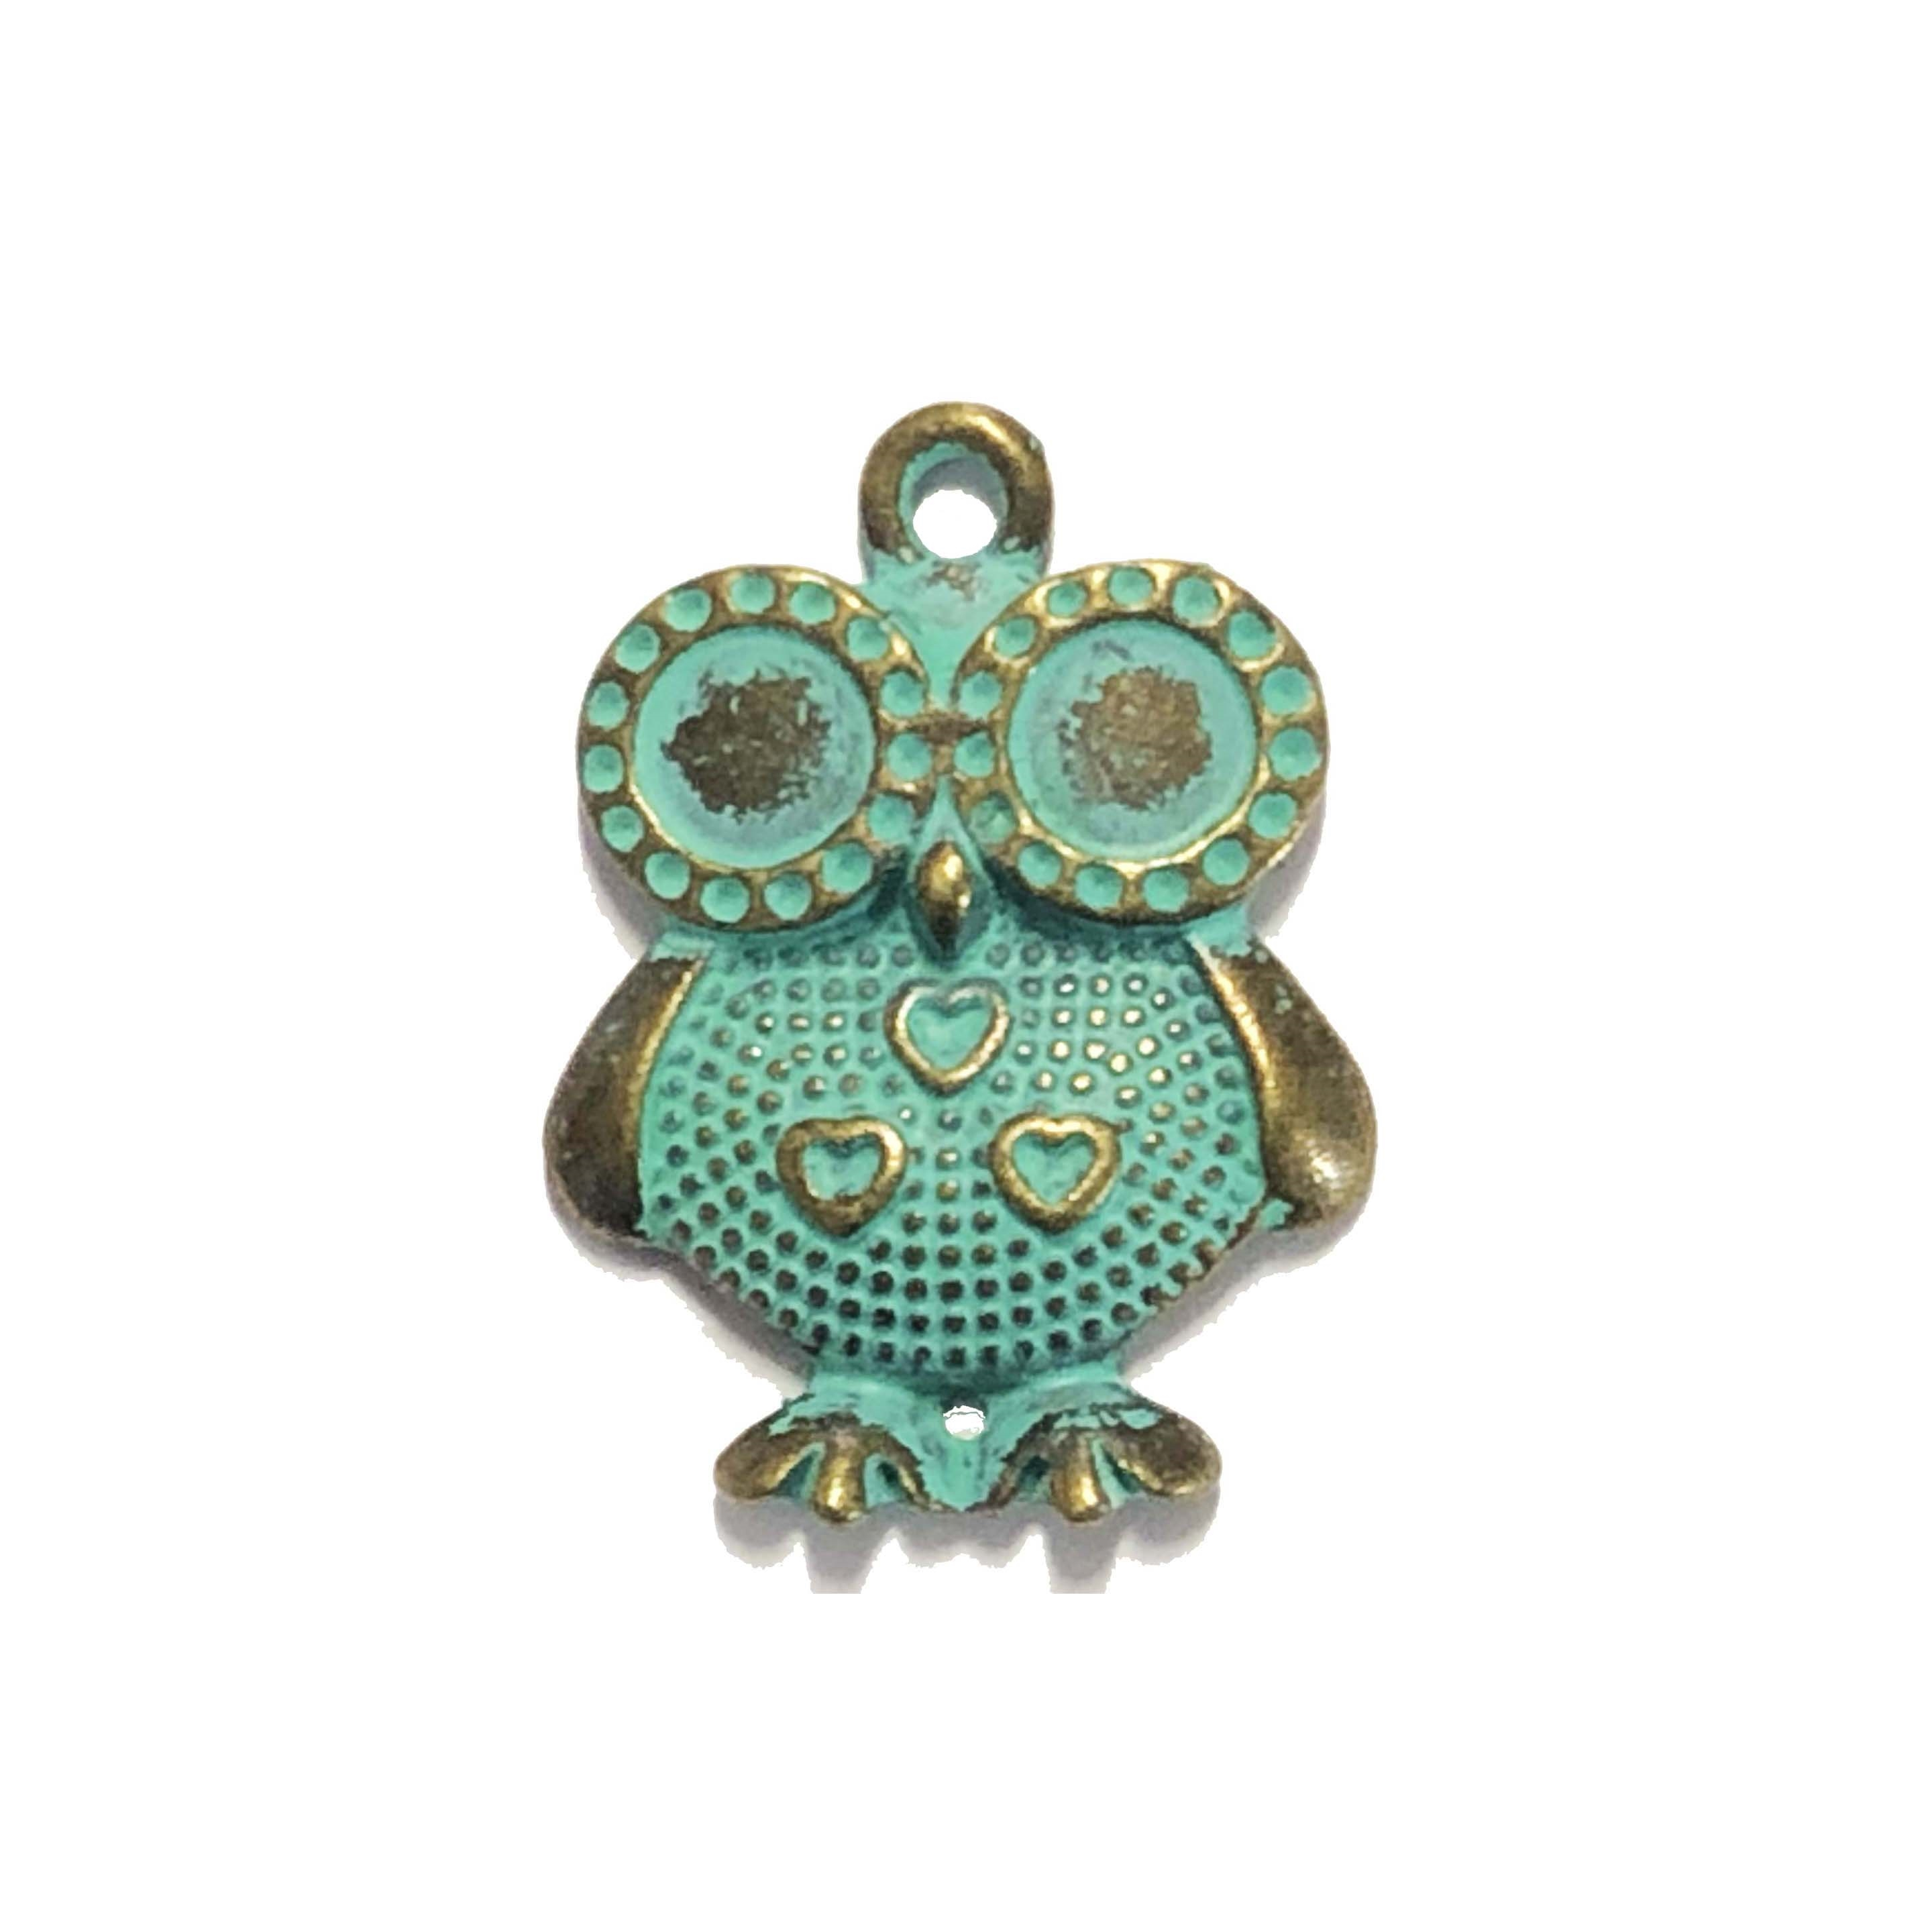 owl pendant, owl connector, antique bronze, 09579, jewelry supplies, B'sue Boutiques, jewelry parts, jewelry findings, bird jewelry, charm, pendant, birds, owl, jewelry making supplies, green patina